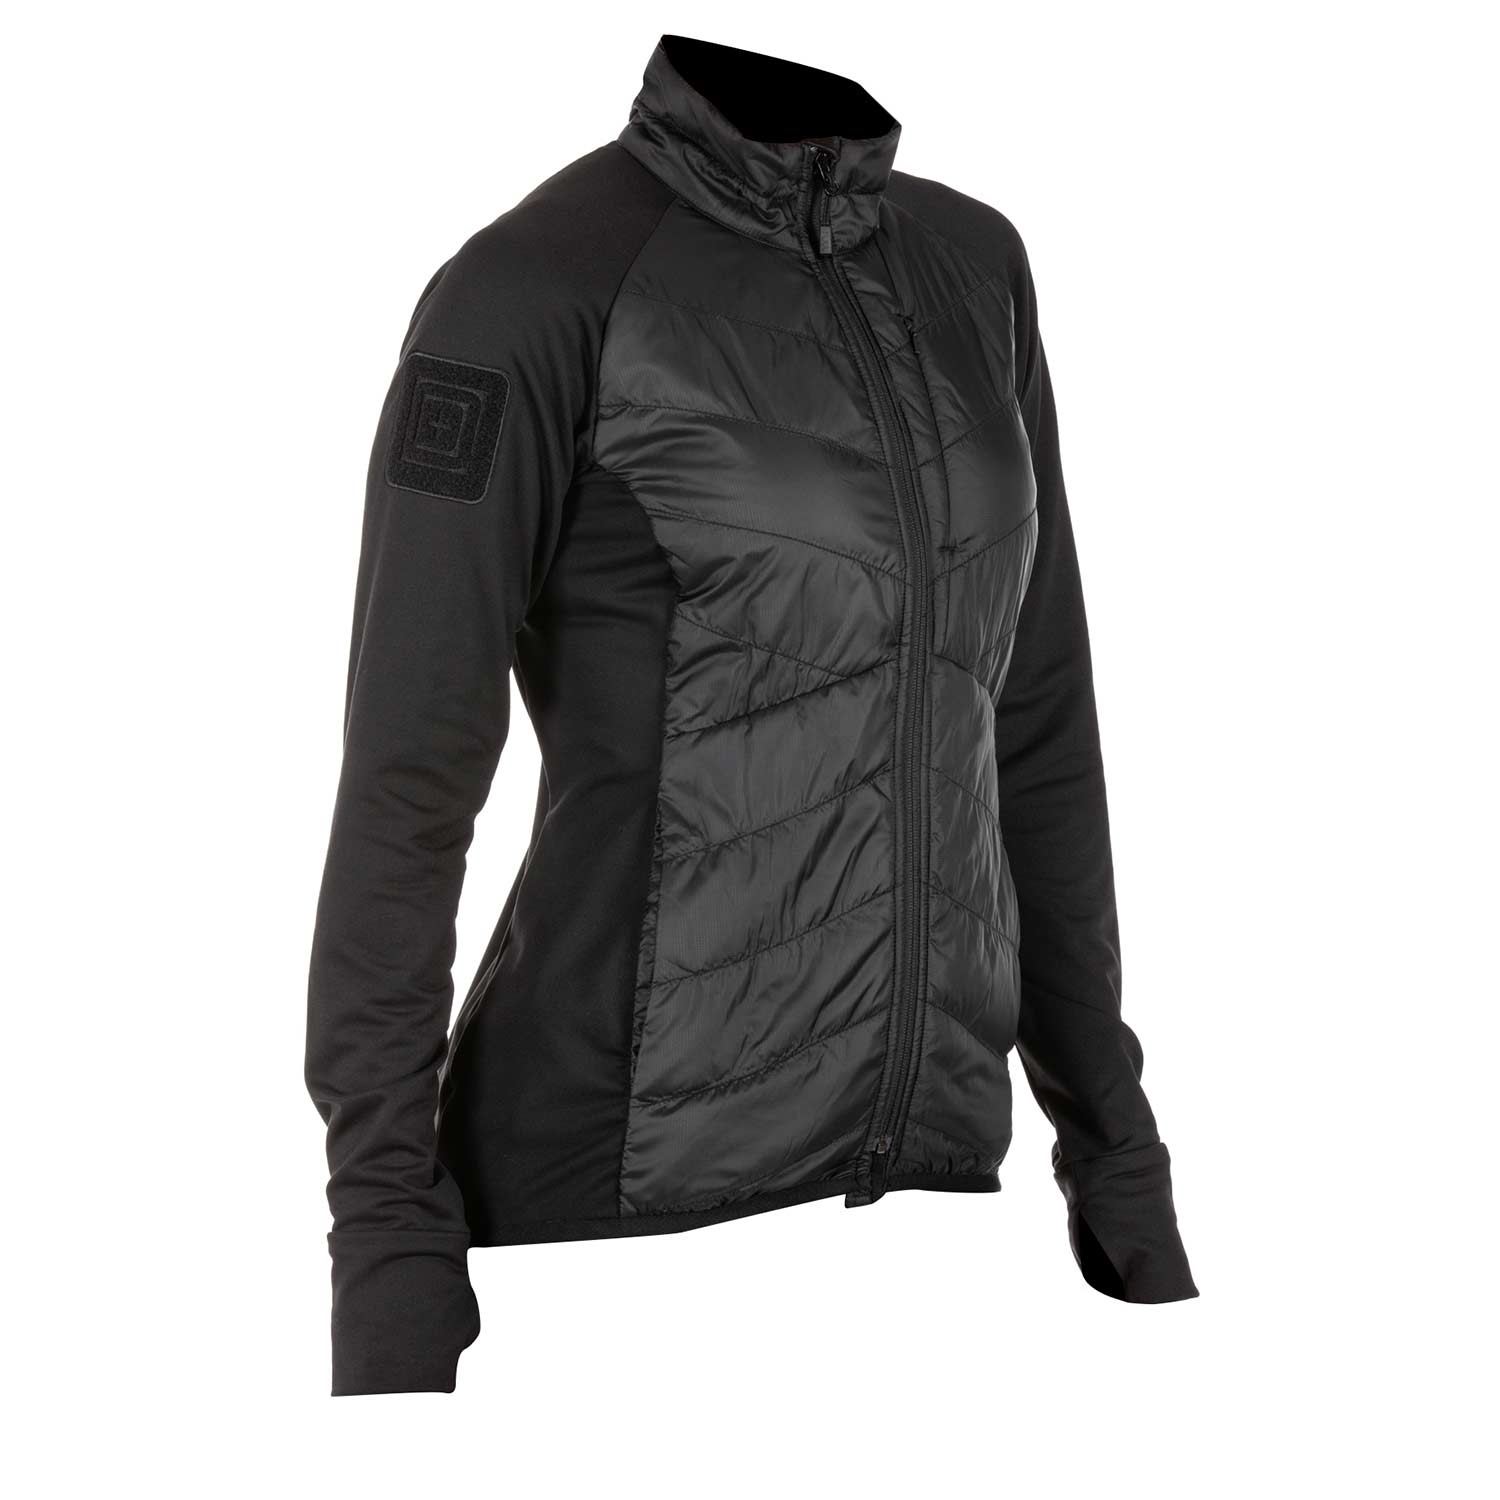 5.11 Tactical Women's Peninsula Hybrid Jacket Details